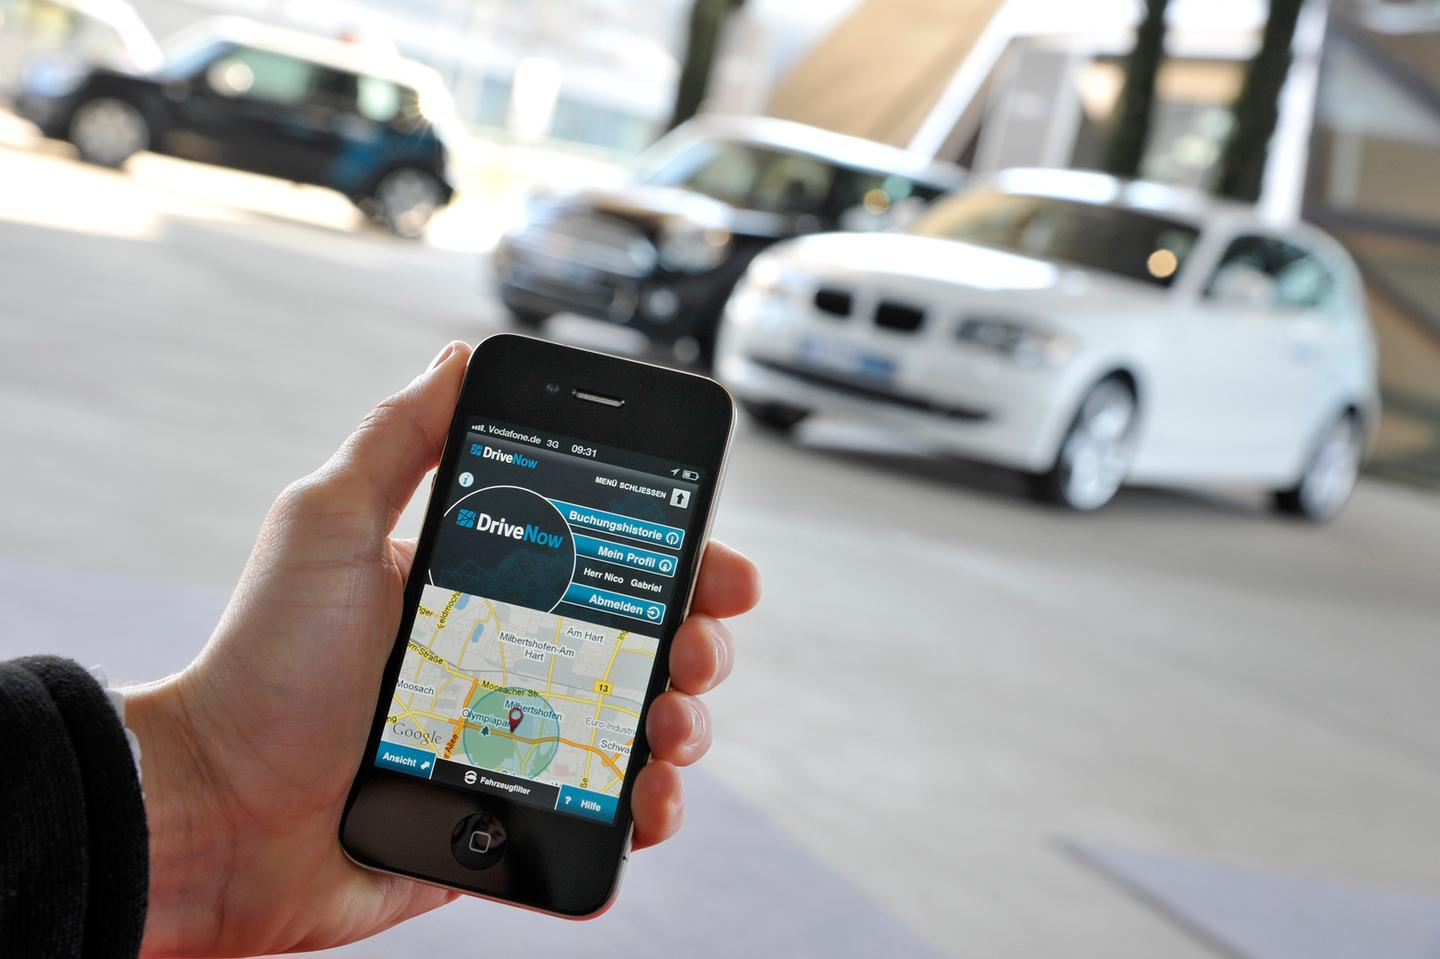 DriveNow members can find cars via the Internet or a smartphone app